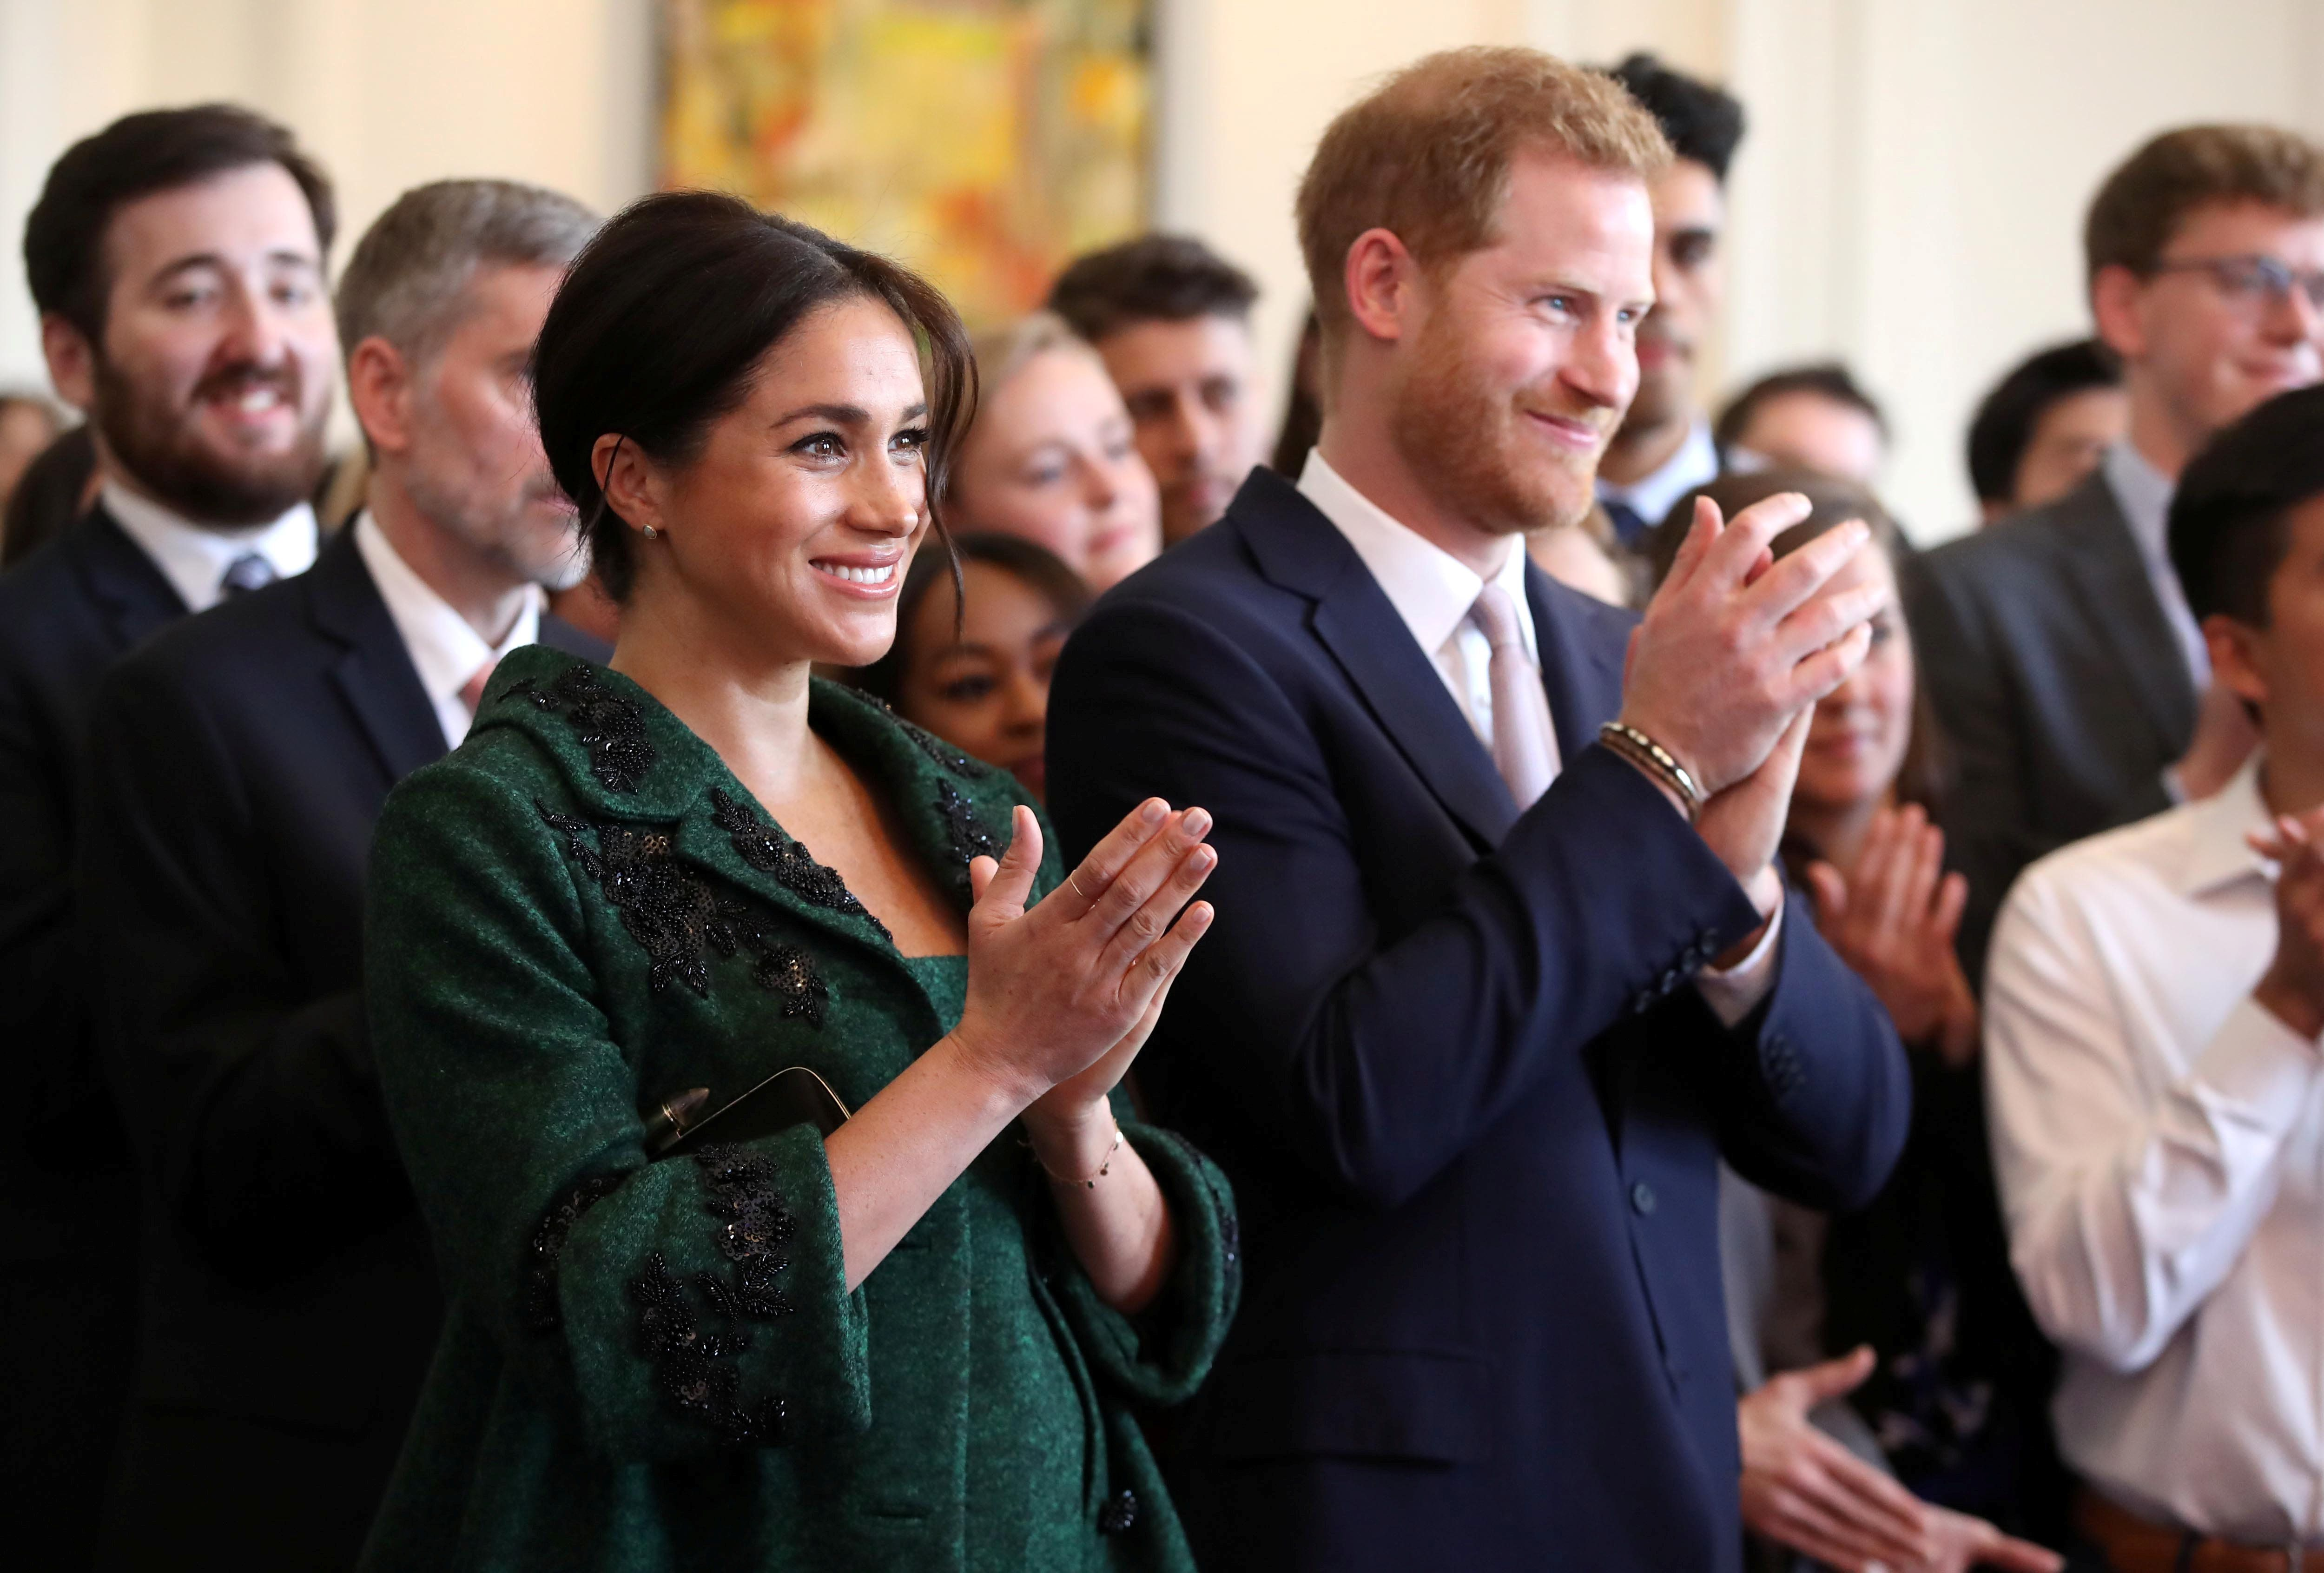 Britain's Prince Harry and Meghan, Duchess of Sussex attend a Commonwealth Day youth event at Canada House in London, Britain, March 11, 2019. Chris Jackson/Pool via REUTERS